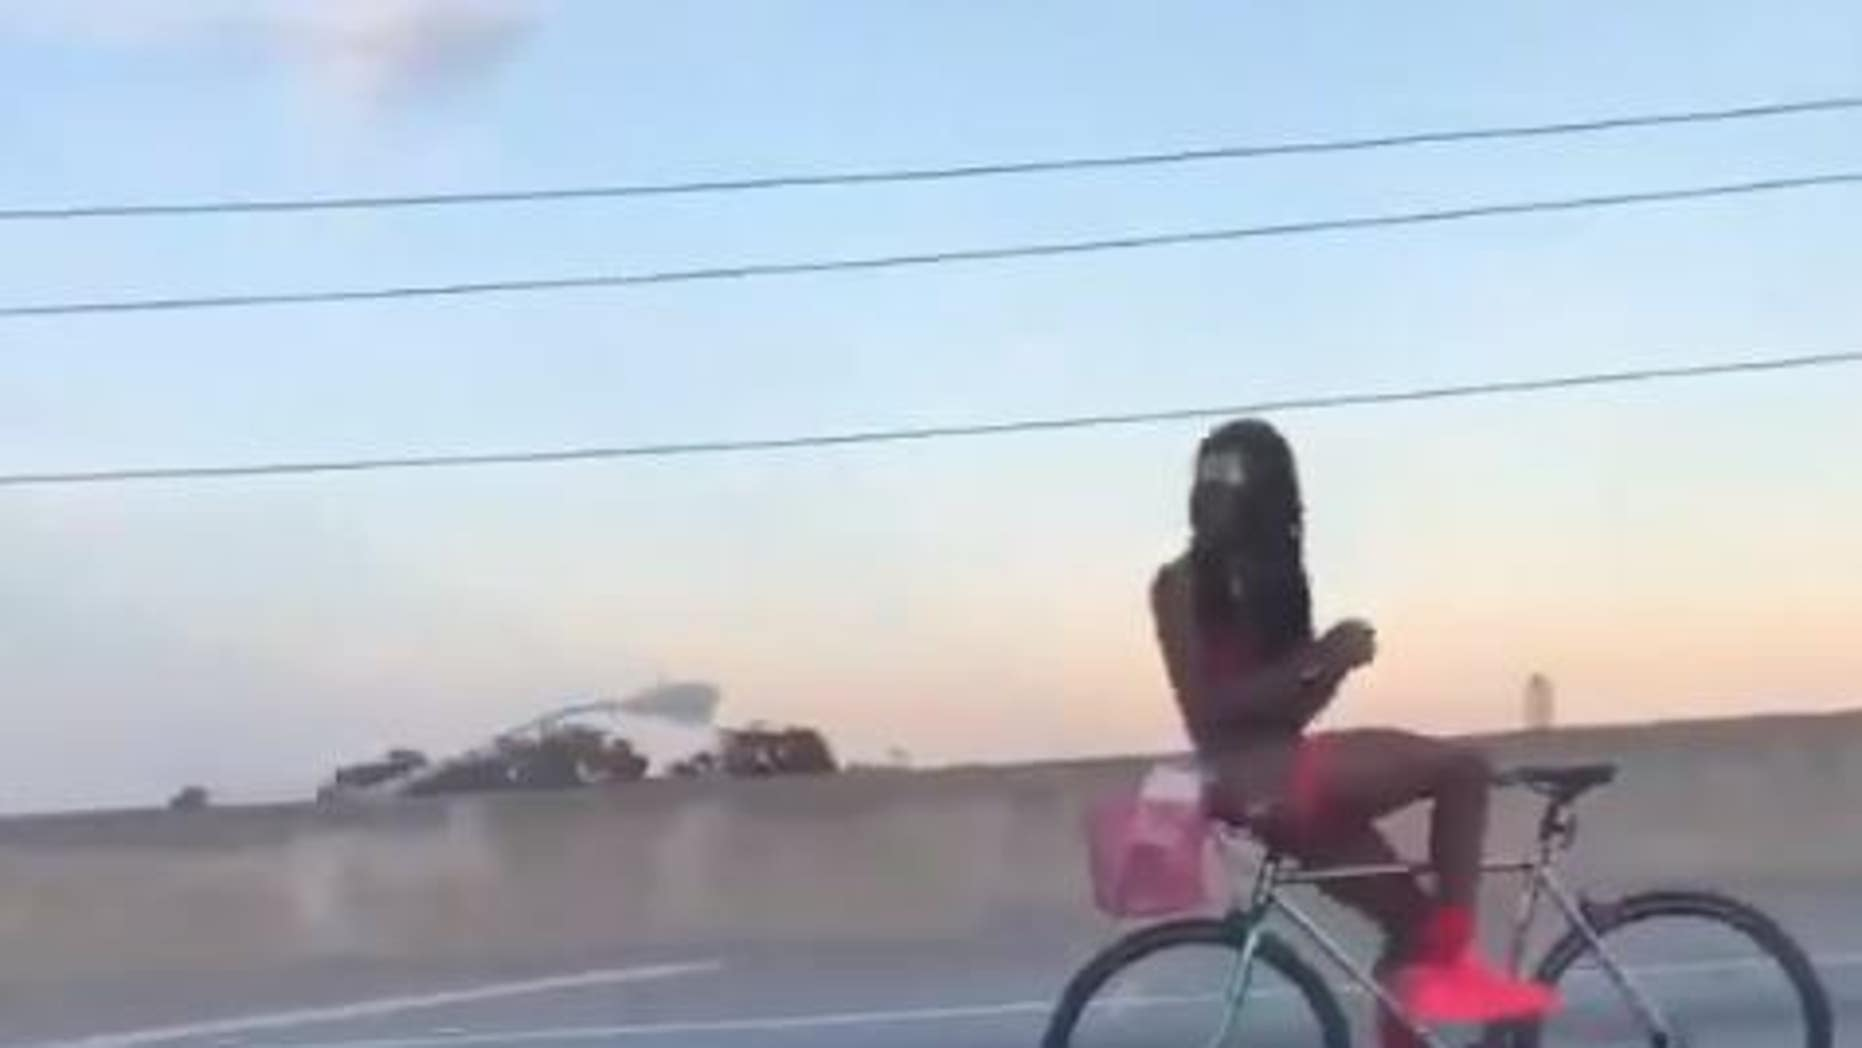 A viral video captured a man riding backwards on I-95 in Florida on Sunday while appearing to be semi-nude.